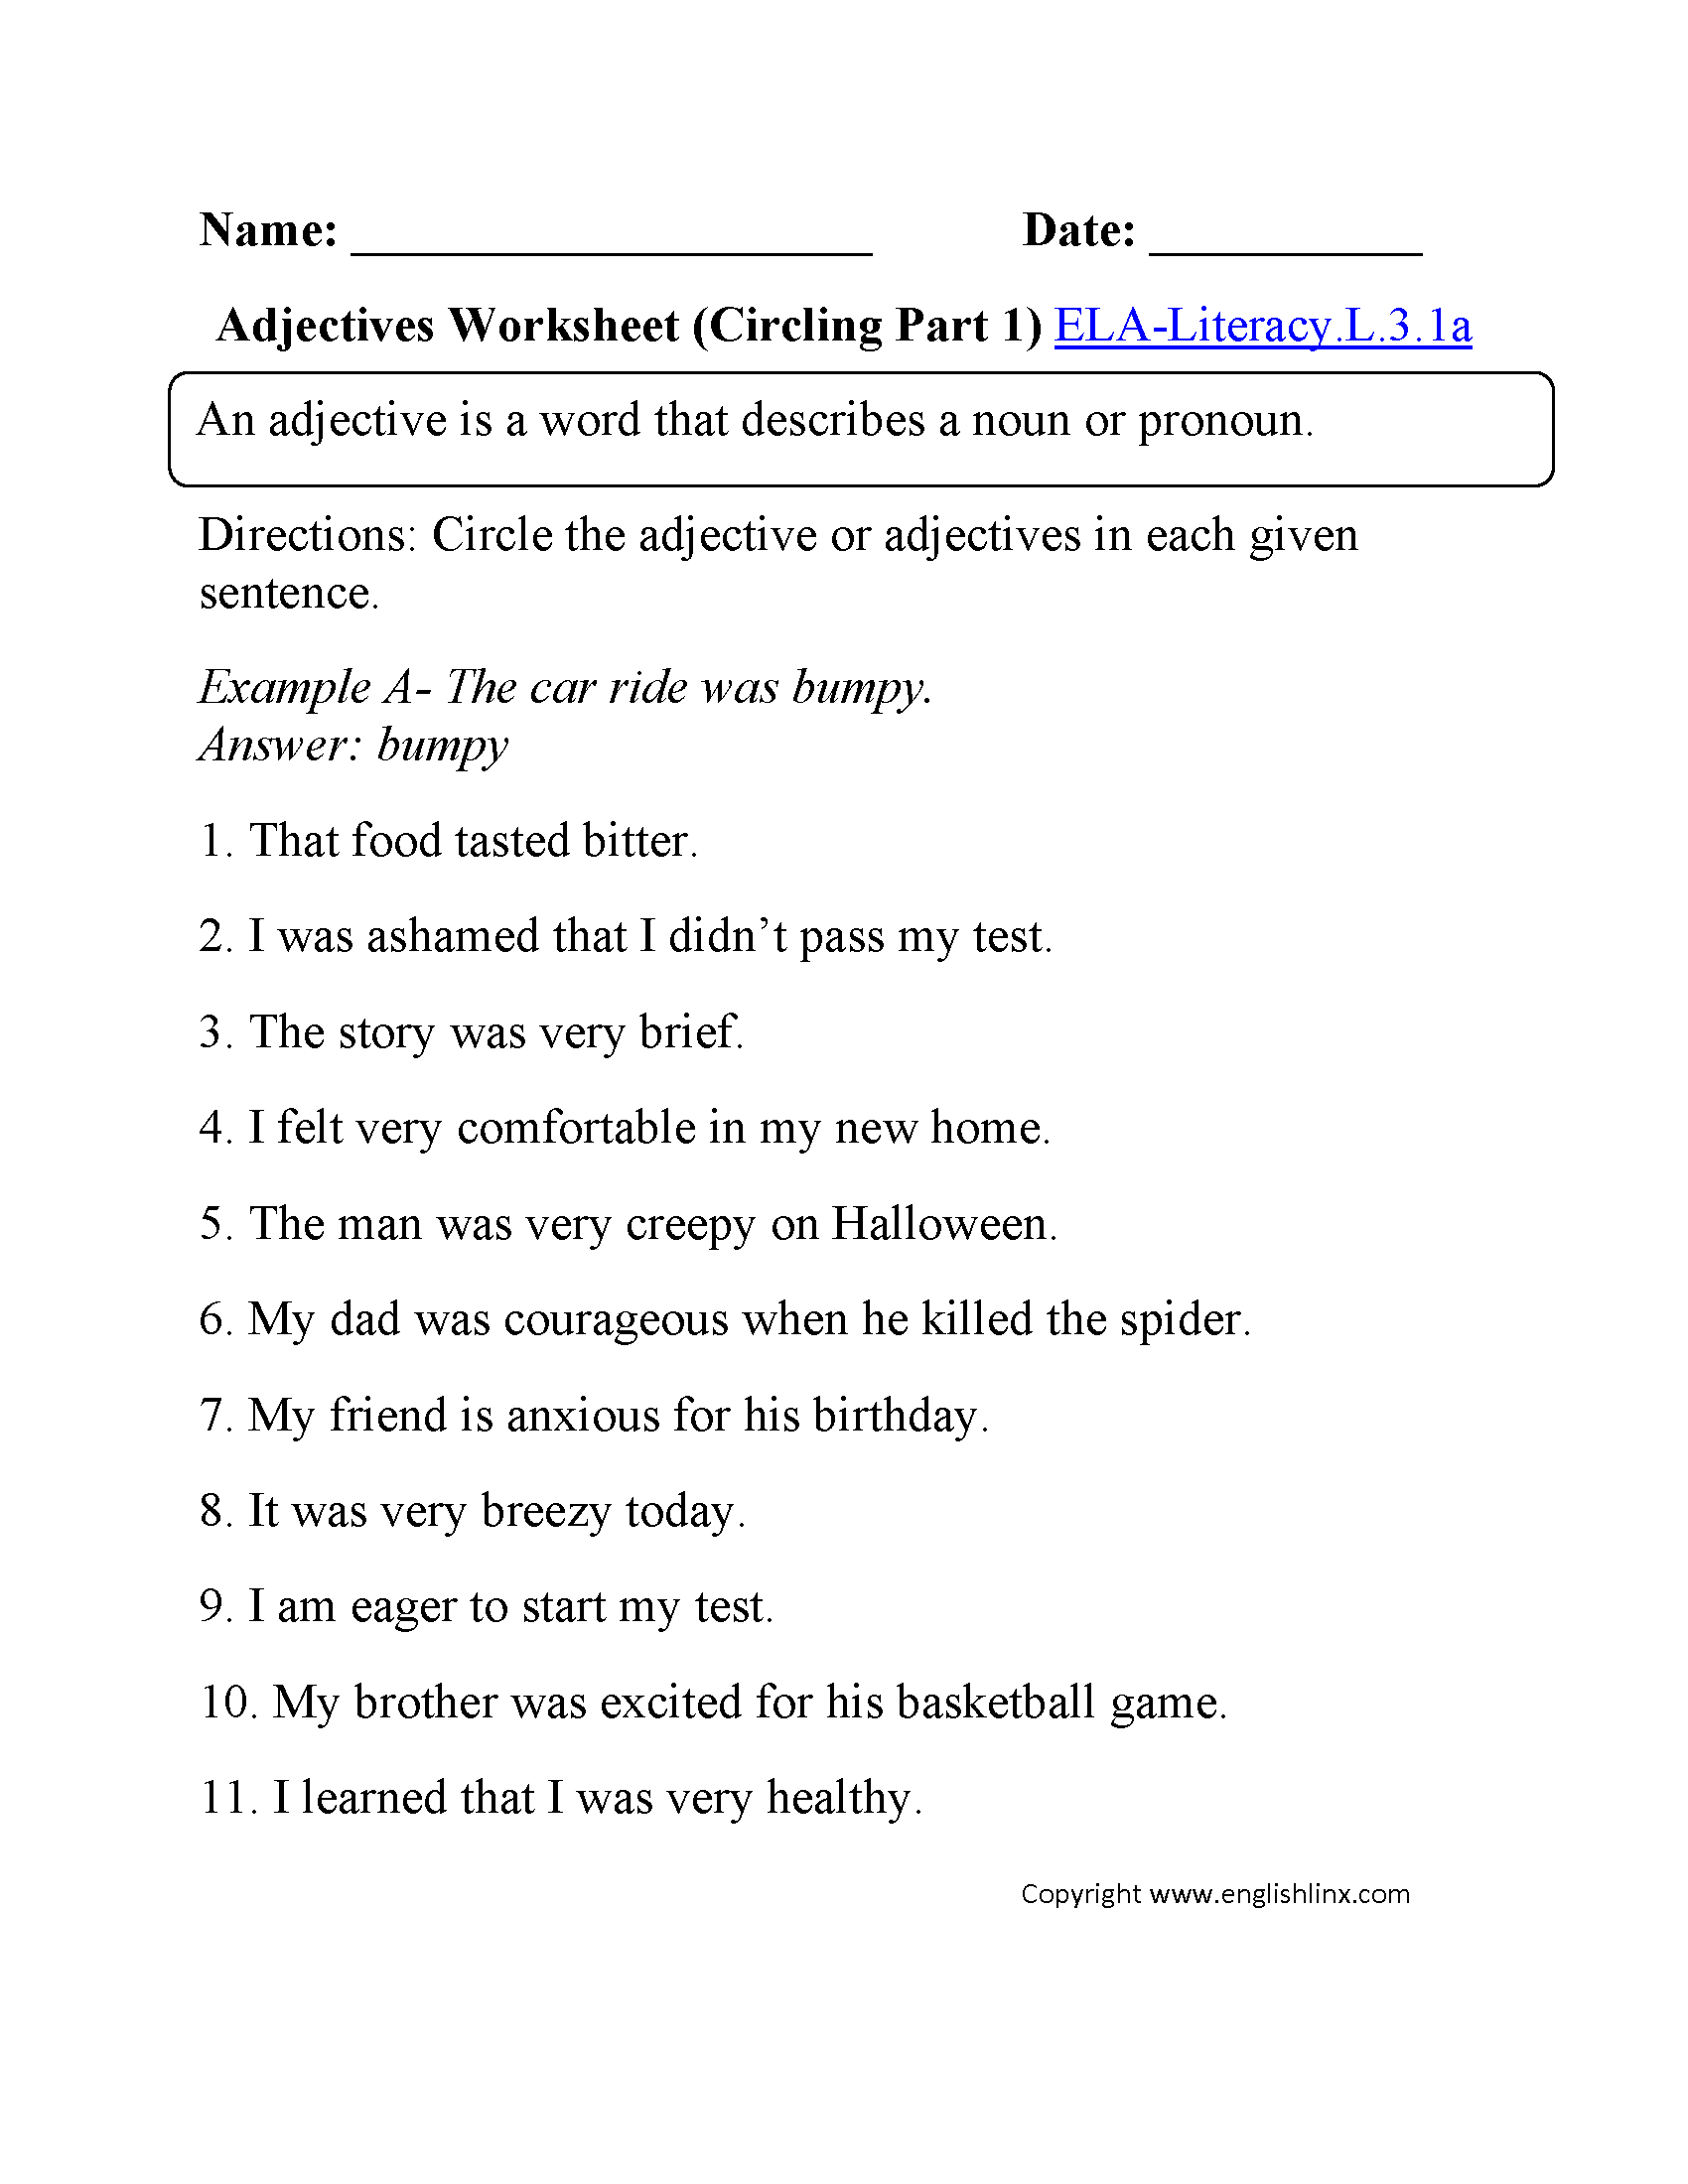 worksheet Free Adjective Worksheets adjectives worksheet 1 l 3 pinterest worksheets 1